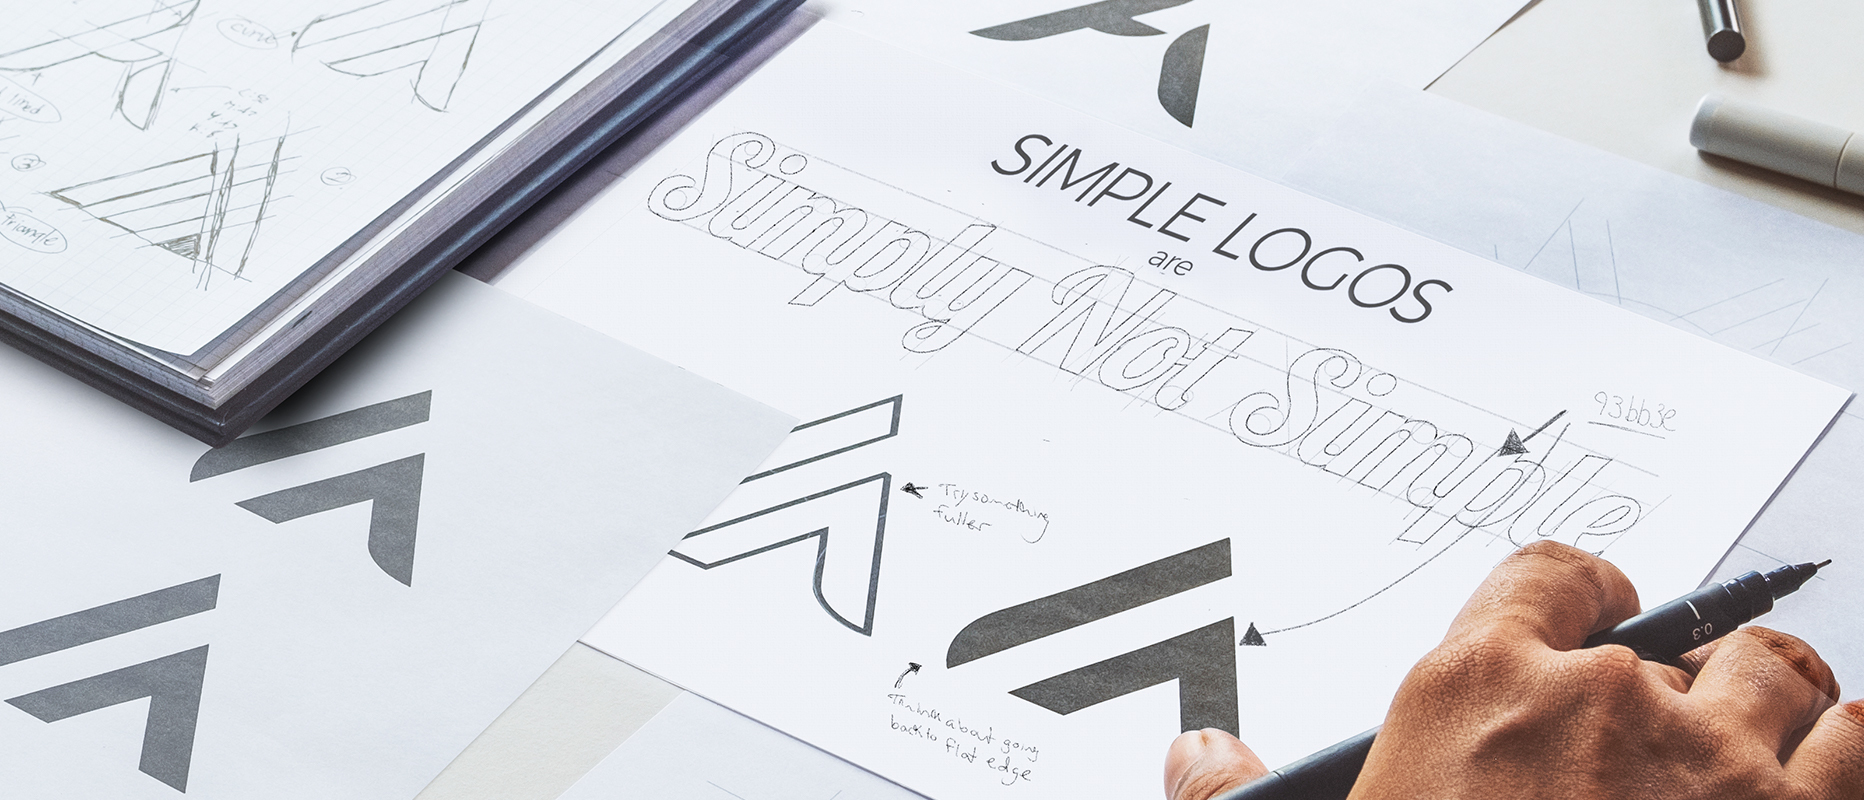 Simple Logos Are Simply Not Simple